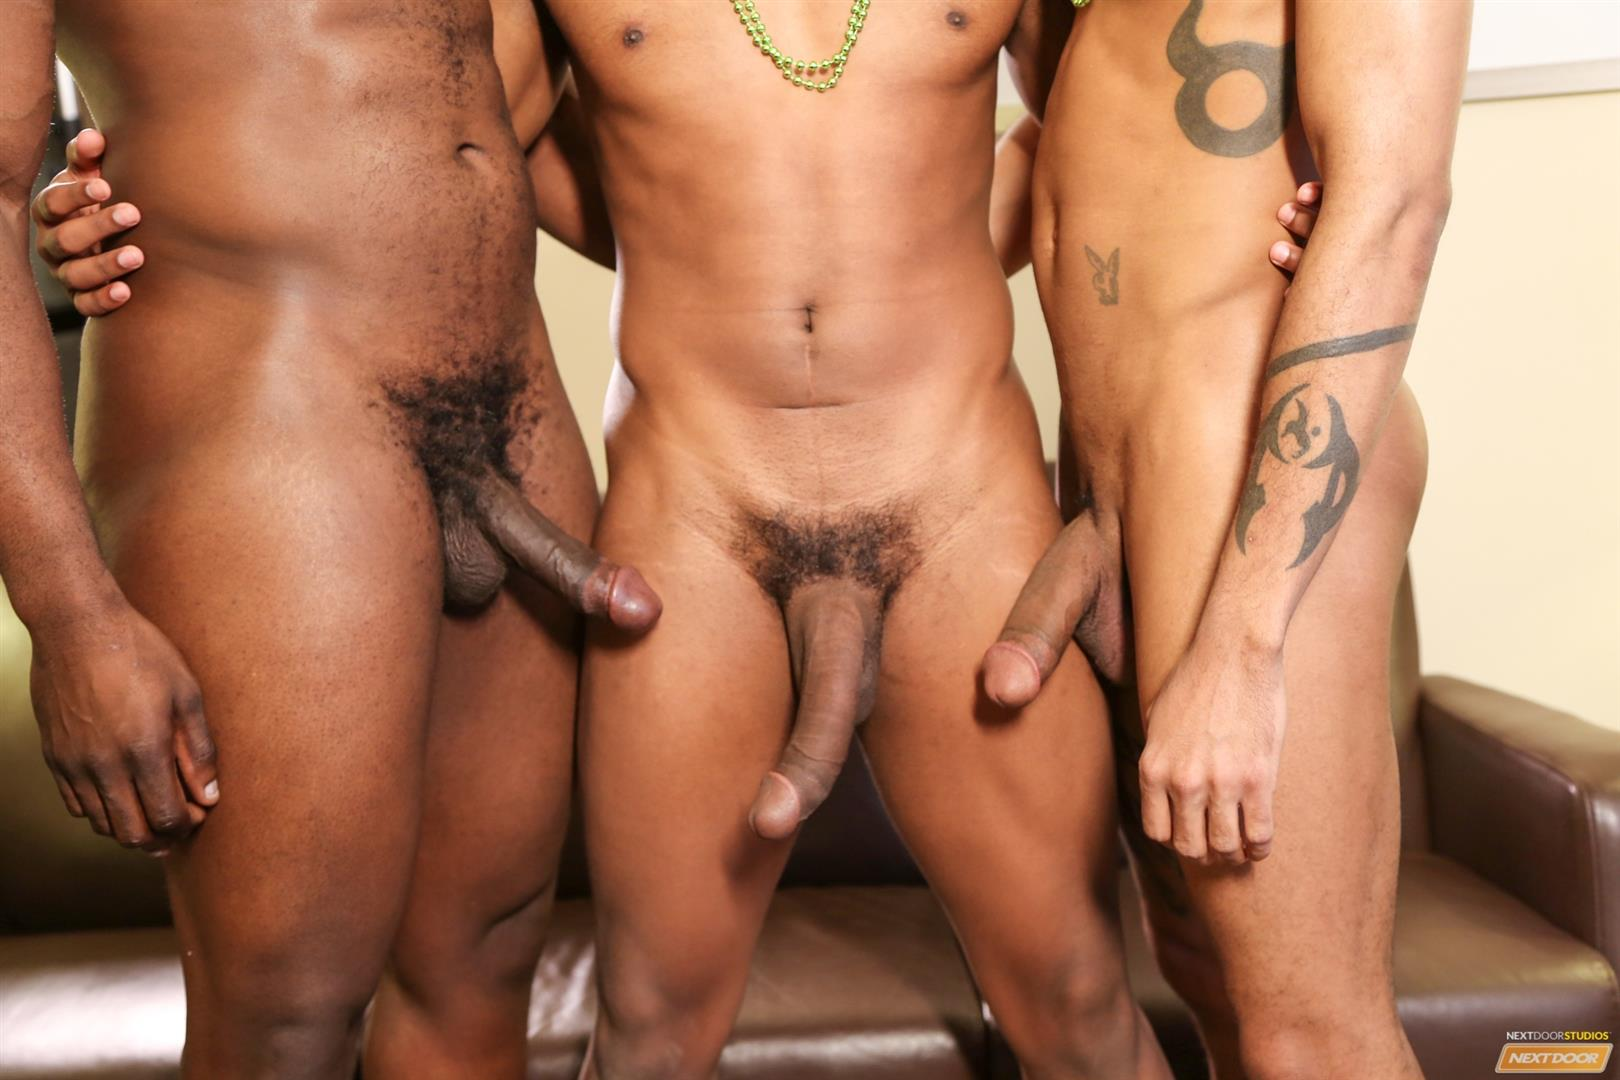 Next Door Ebony Nubius and Jin Powers and XL Naked Thugs Threeway Fucking Amateur Gay Porn 06 Big Black Cock Threeway Suck and Fuck Thug Fest